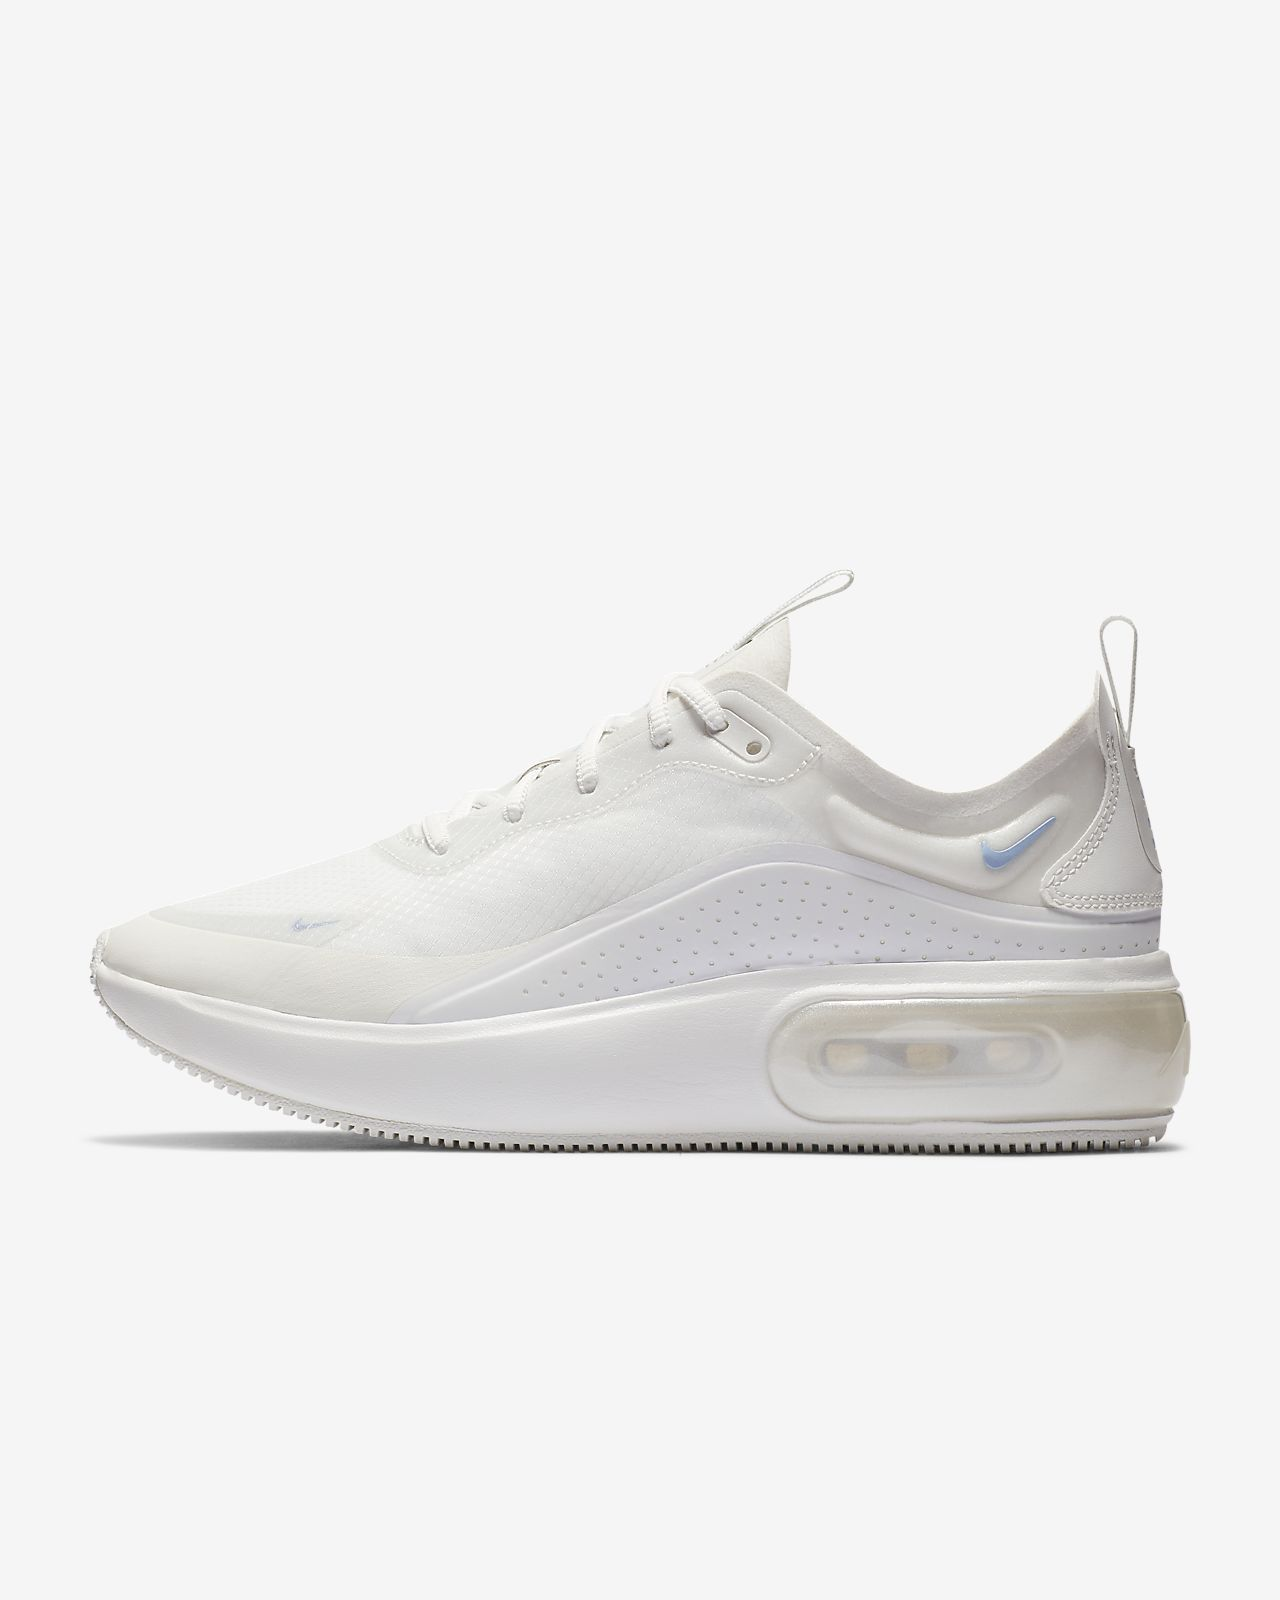 a540d2bb0bf782 Low Resolution Nike Air Max Dia SE Shoe Nike Air Max Dia SE Shoe